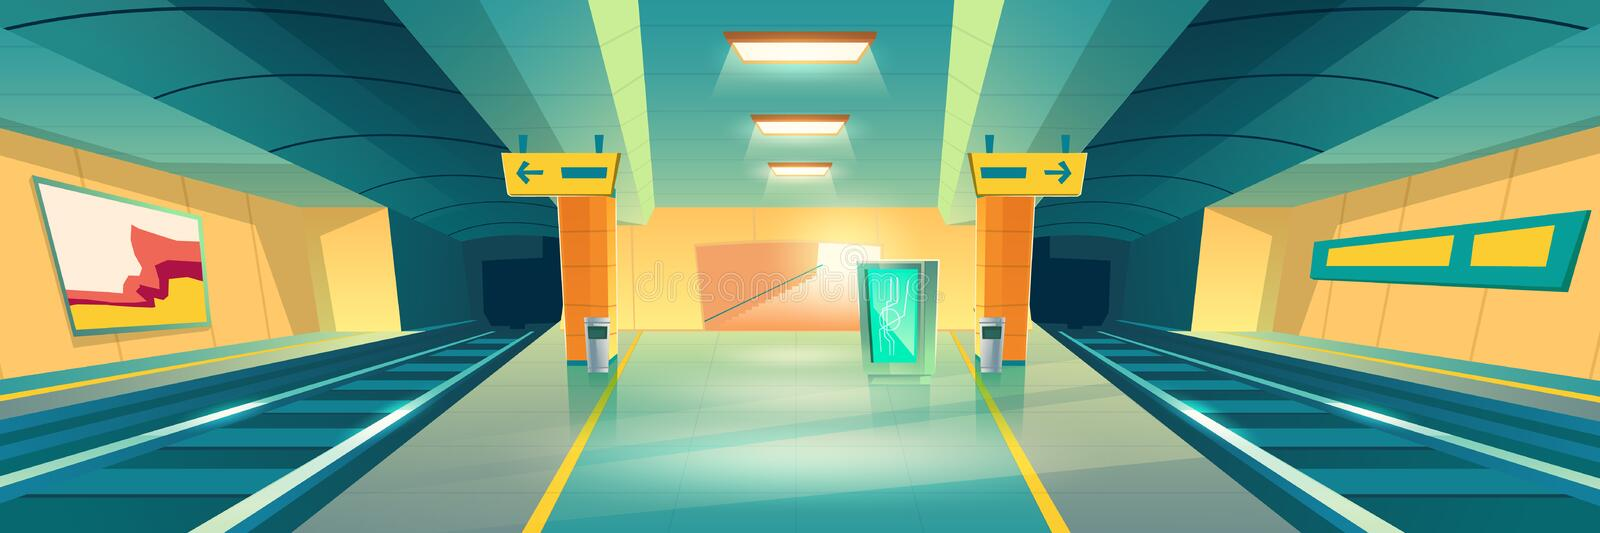 Metro station, empty subway platform, underground. Interior design with map and ads banners. Modern metropolitan, railroad urban transportation background royalty free illustration